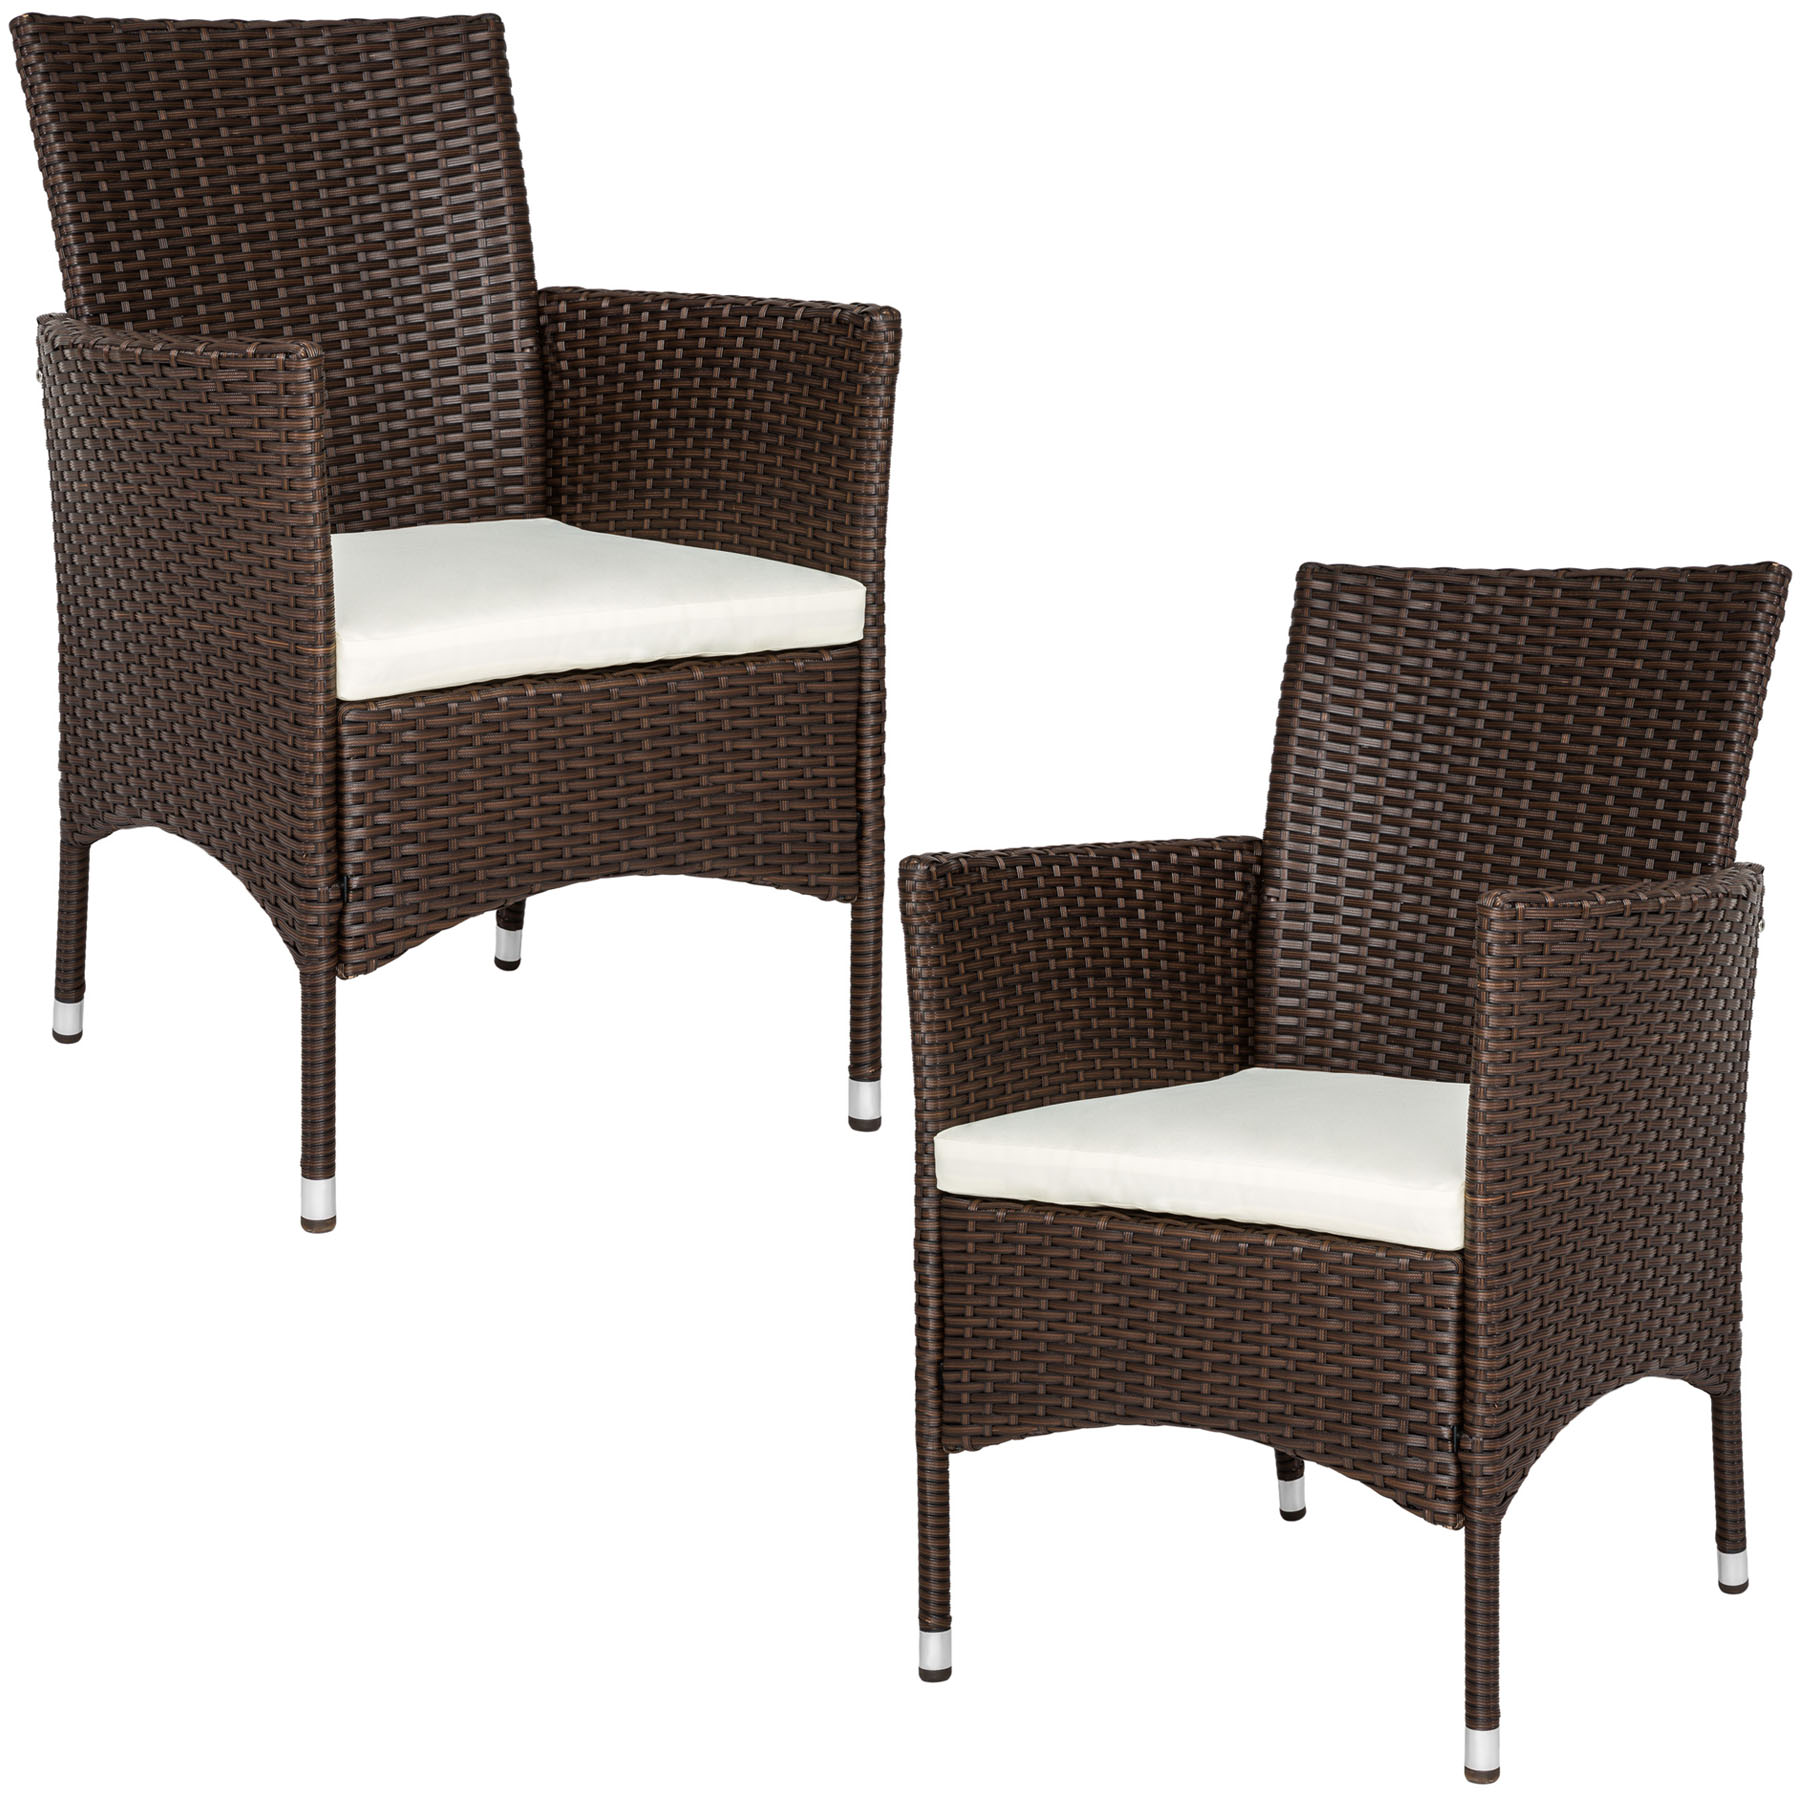 2er set polyrattan st hle gartenstuhl sessel rattanstuhl stuhl braun b ware ebay. Black Bedroom Furniture Sets. Home Design Ideas